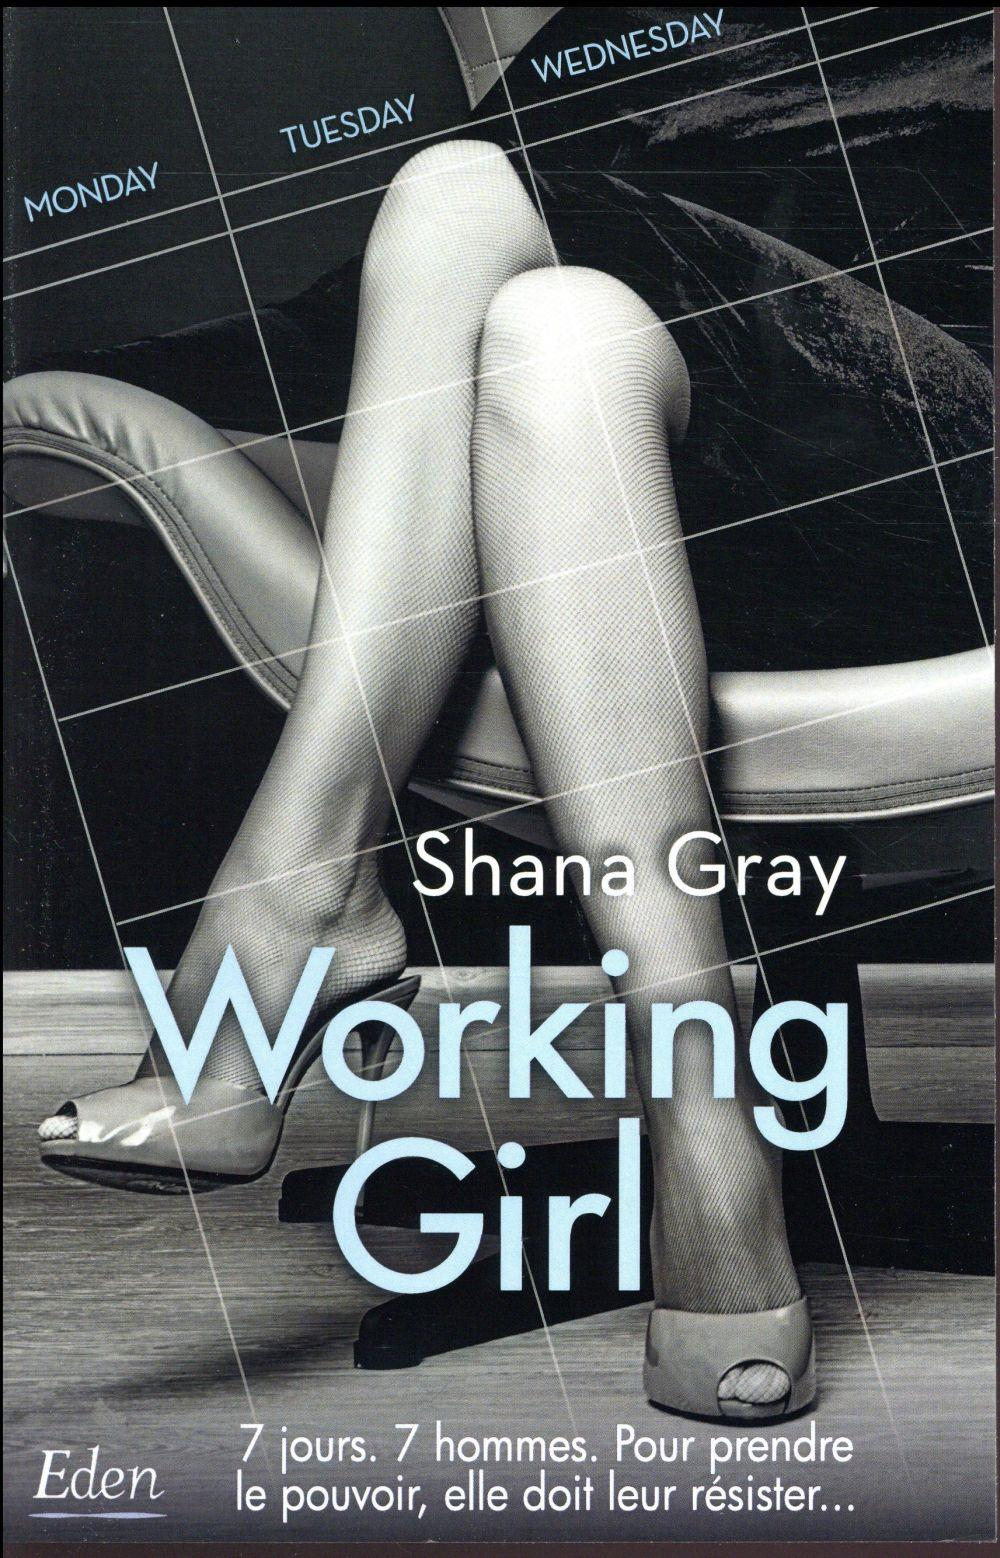 Working girl  - Gray Shana  - Shana Gray